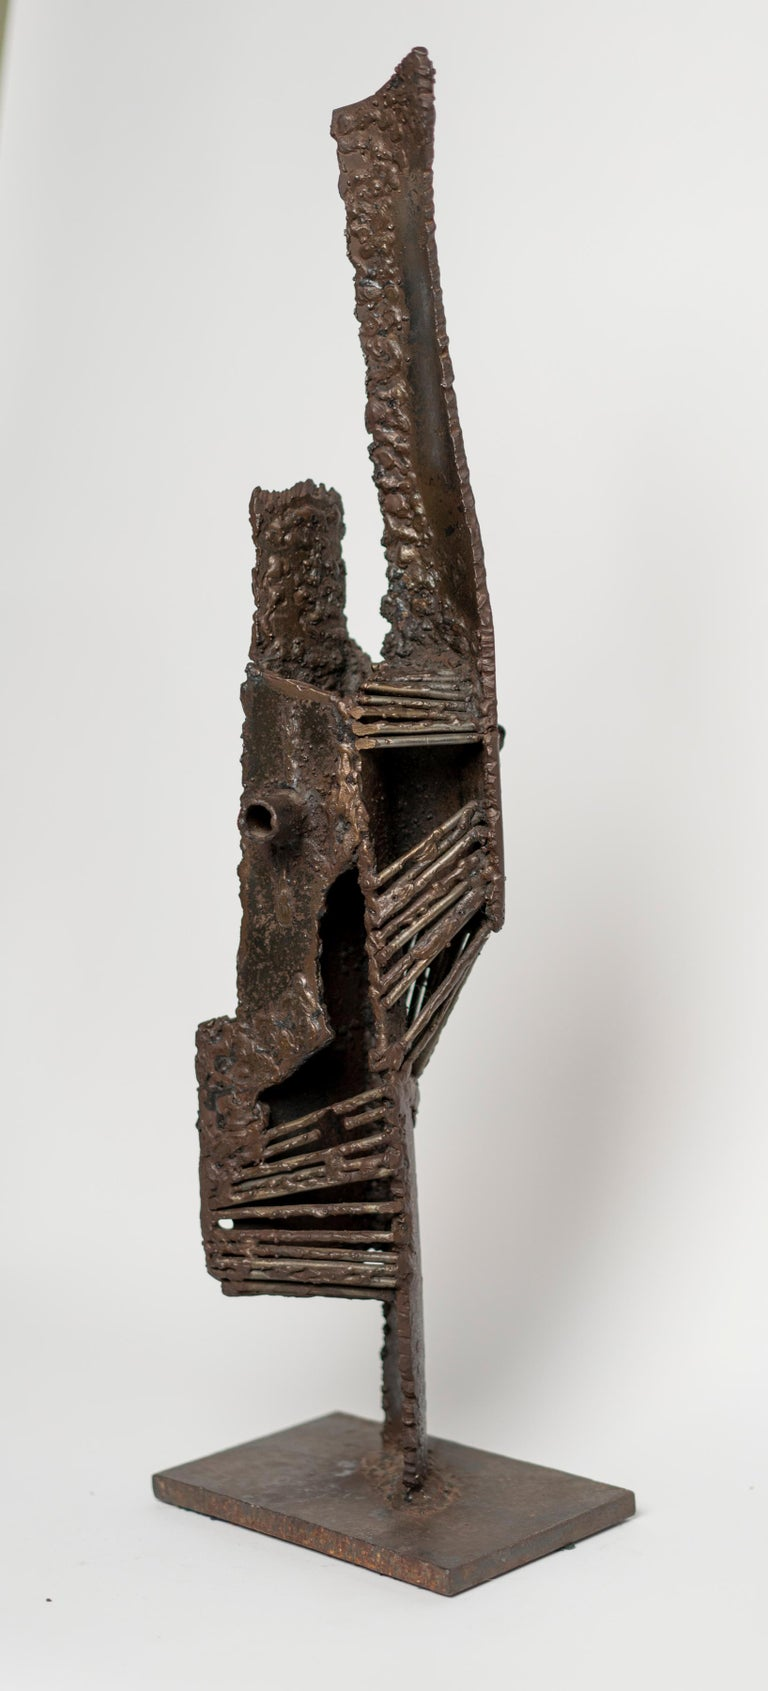 Mid-20th Century Abstract Brutalist Bronze Sculpture by G. Lachapelle